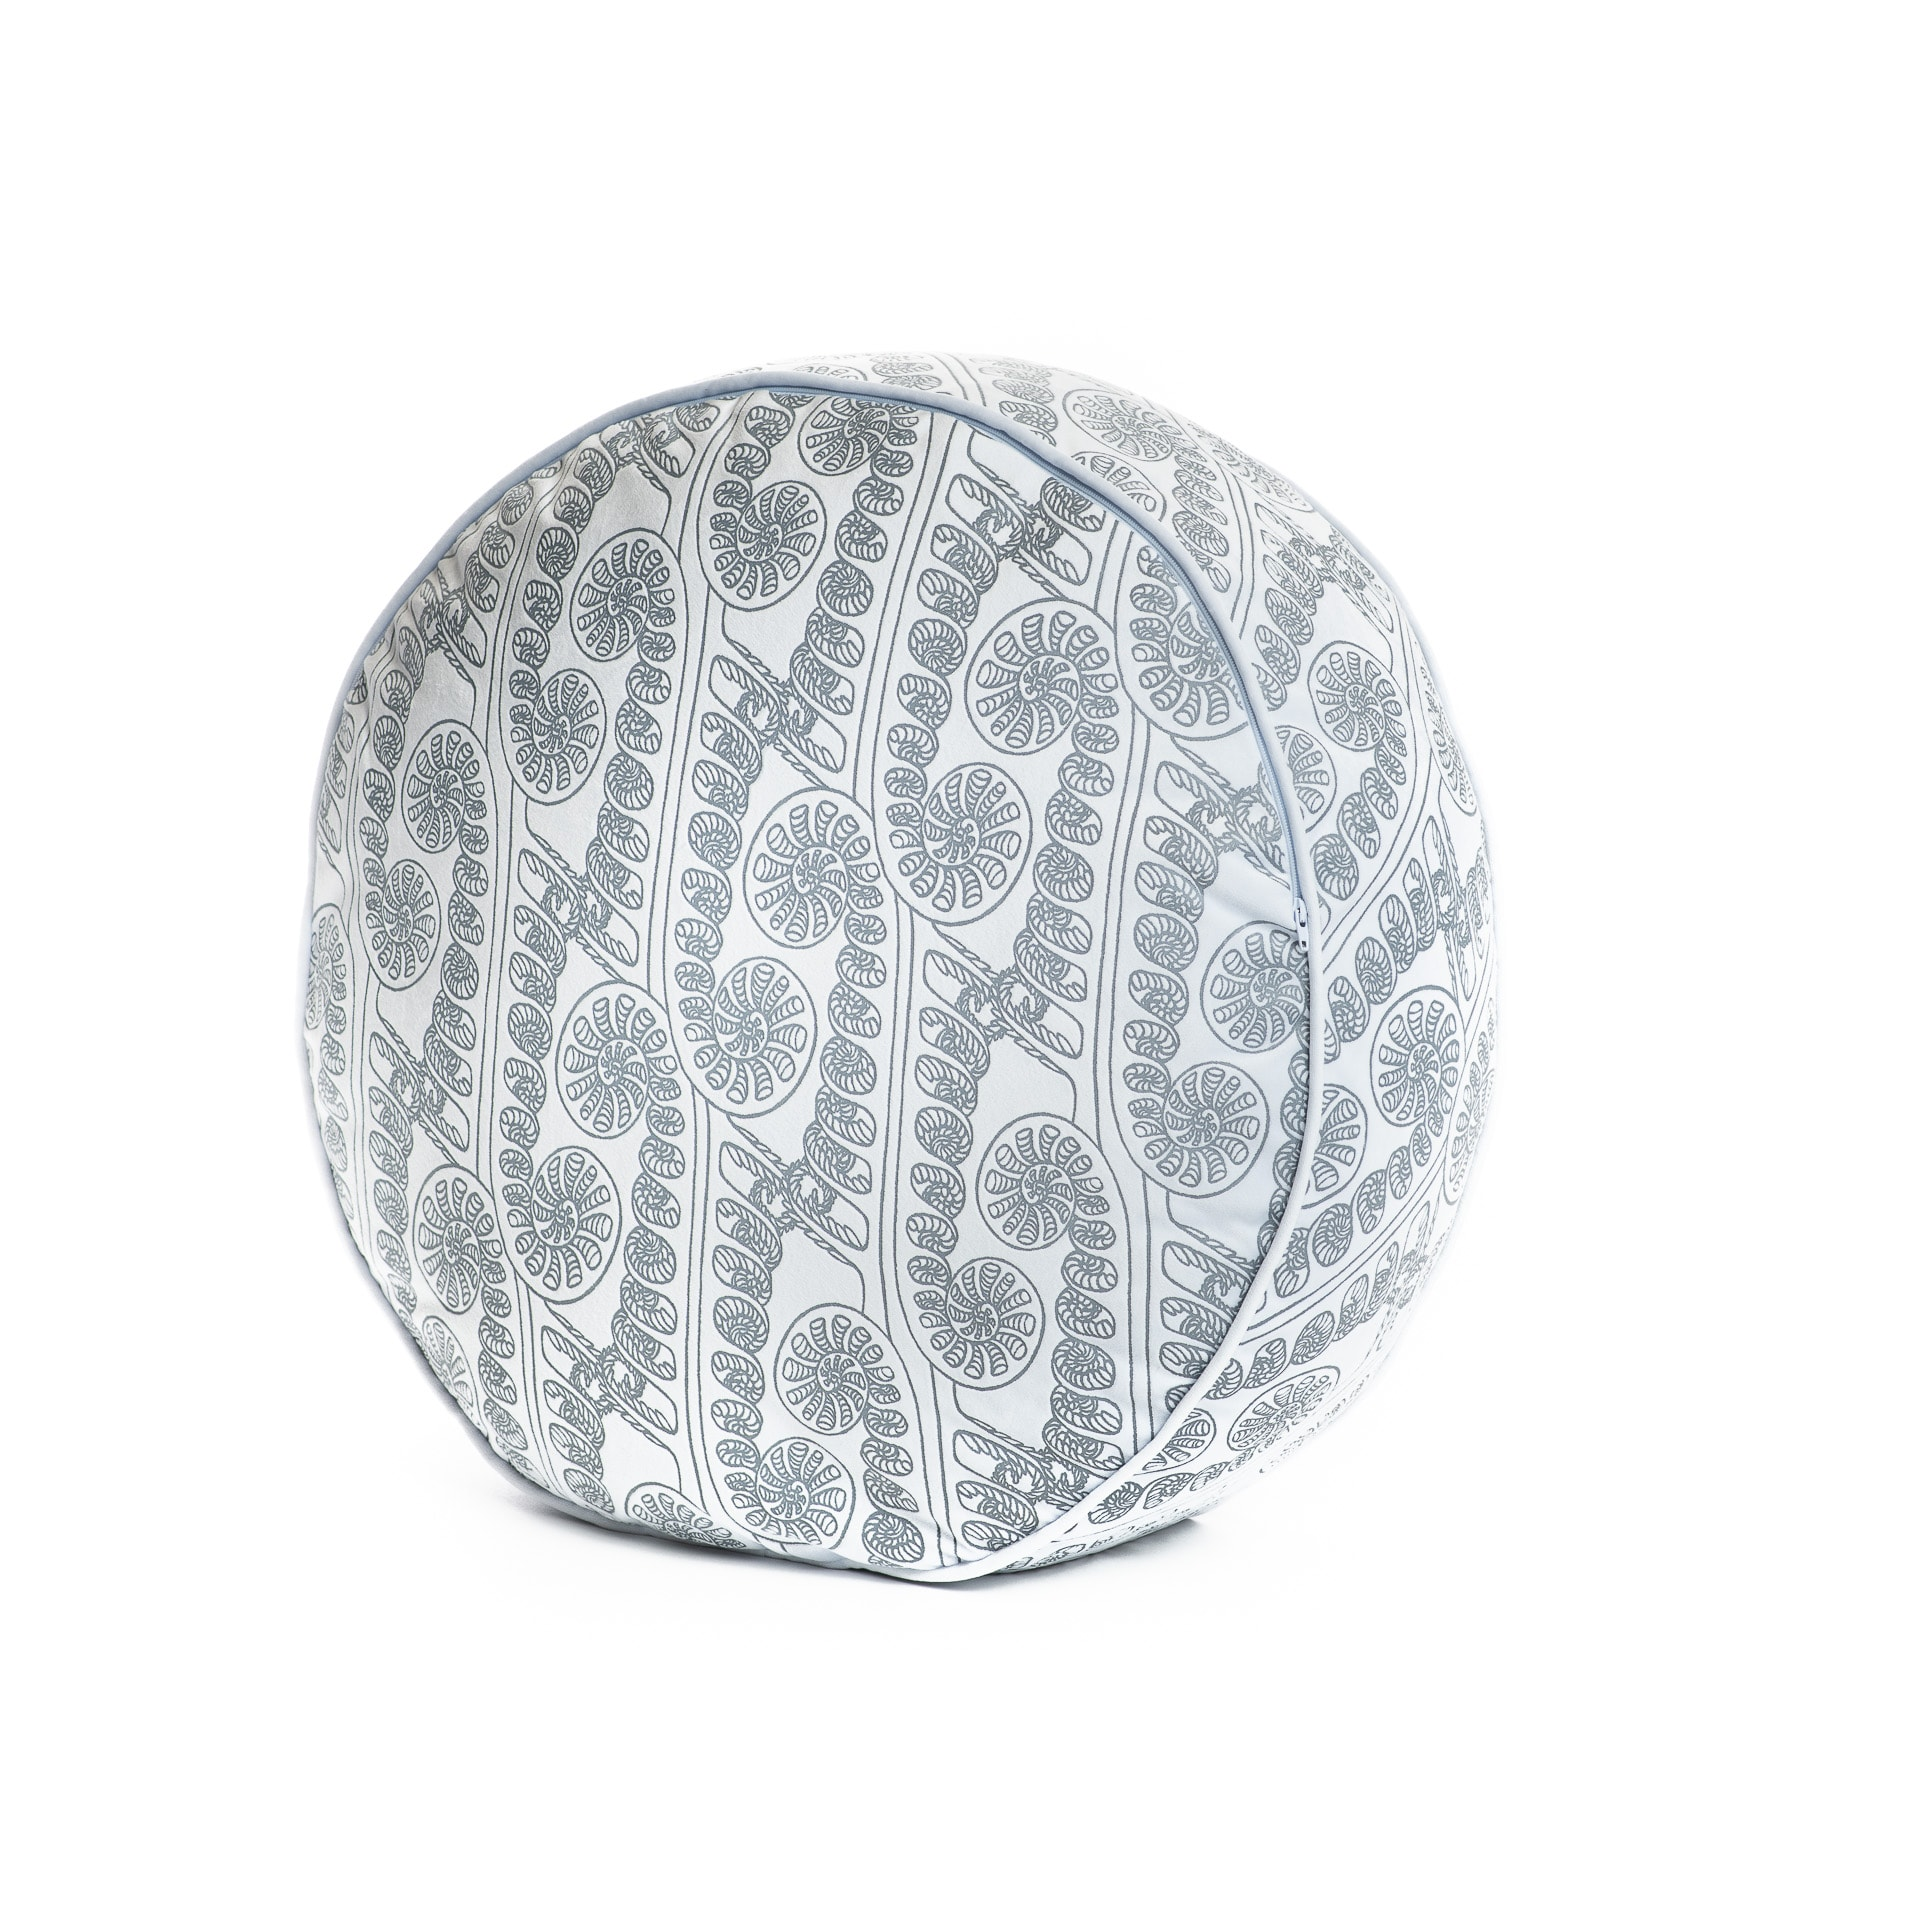 Circle Tuft Pillow in Folkstone Grey/Halogen Blue - up